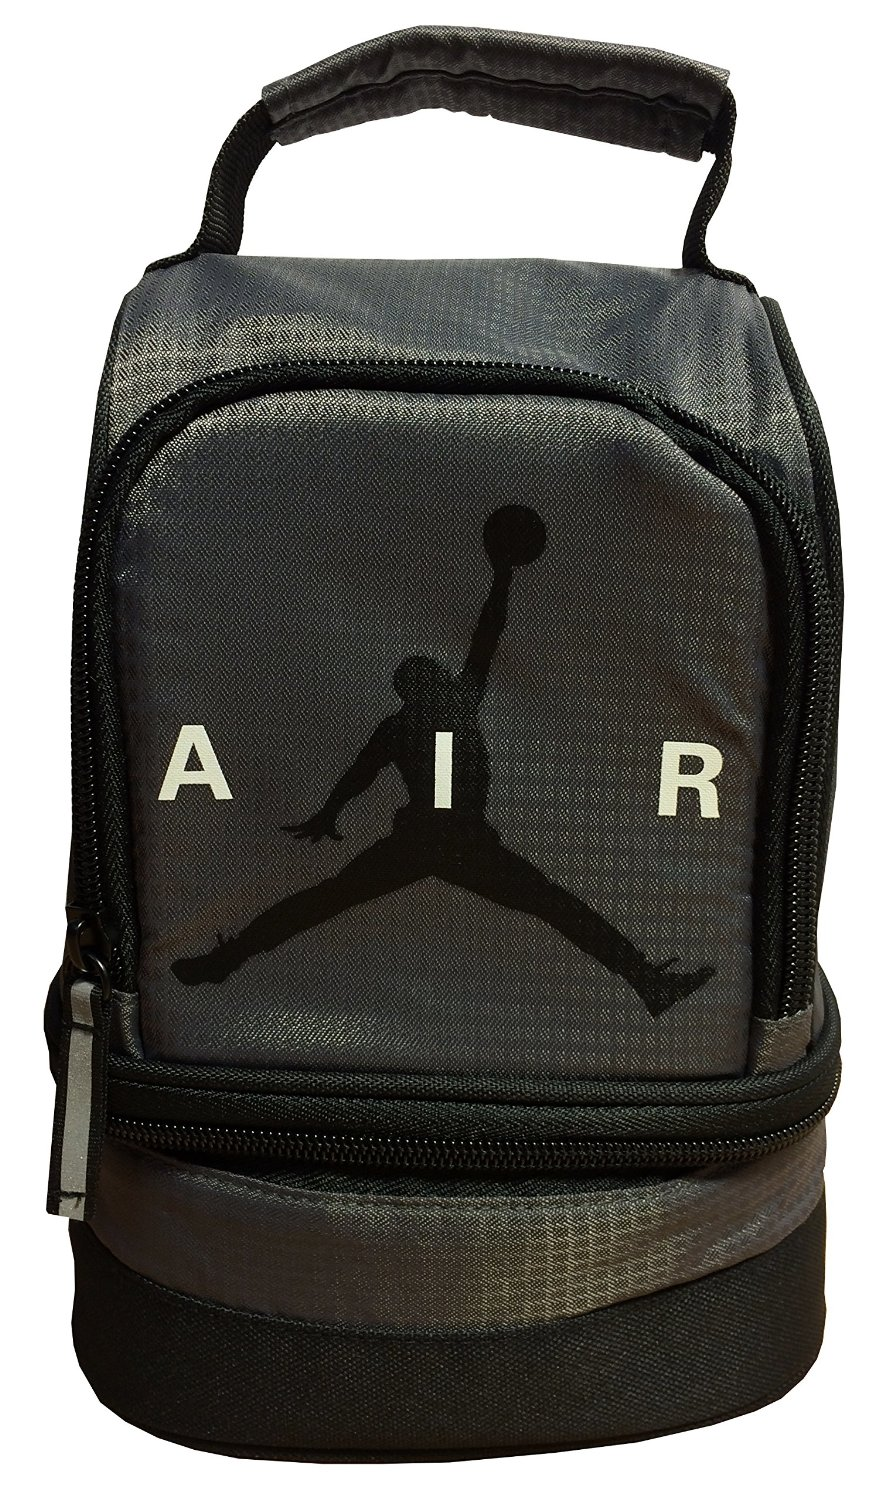 13be27e072 ... Jumpman 23 Backpack Laptop Book BagItem FeaturesOne Large Main Zip  Compartm... Get Quotations · Nike Air Jordan Dome Lunch Bag - Gray